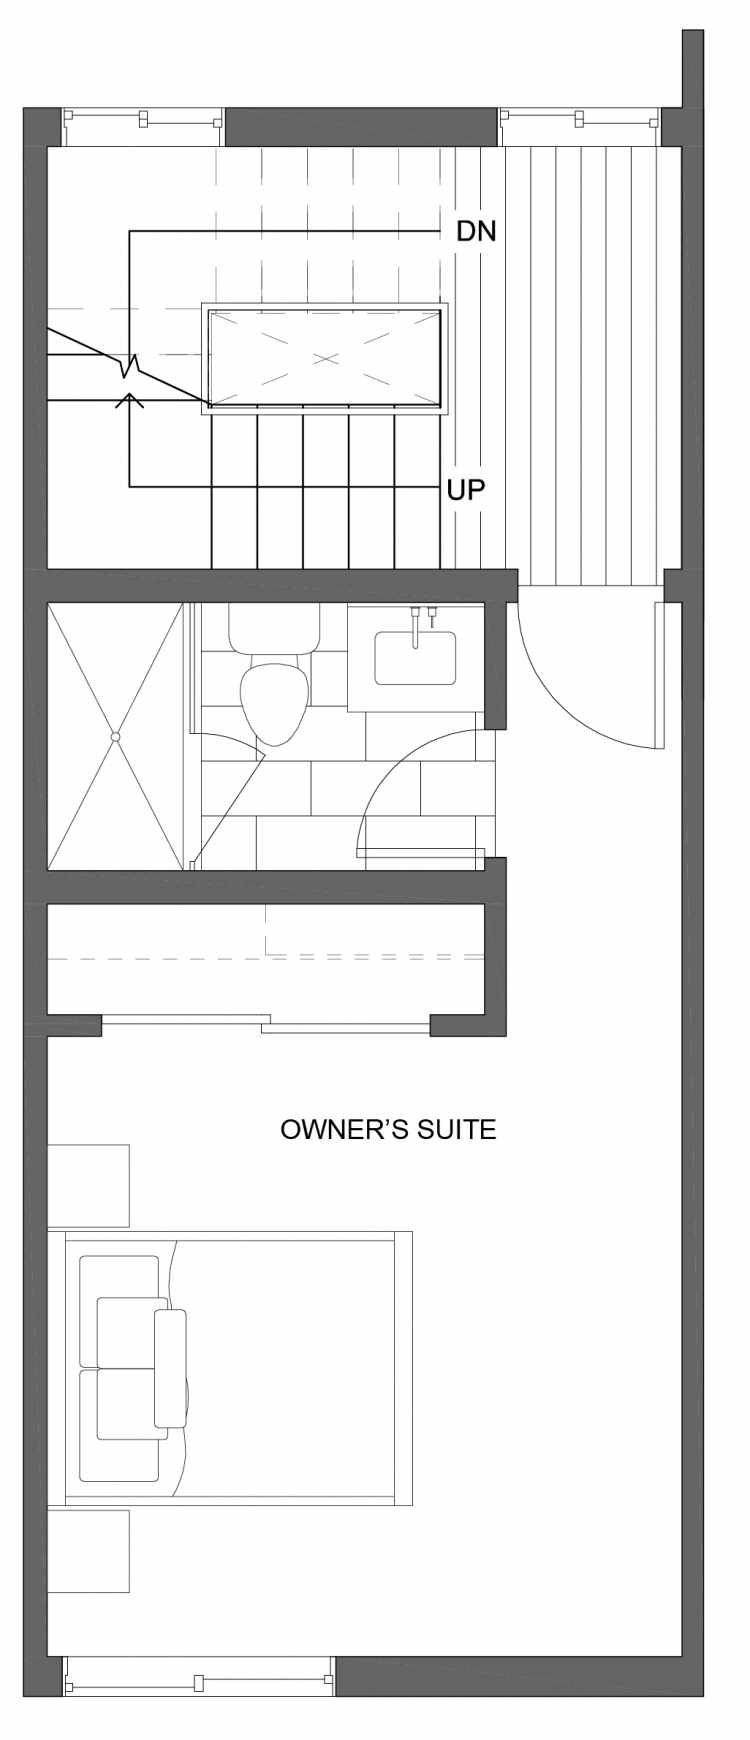 Third Floor Plan of 10429F Alderbrook Pl NW, One of the Jasmine Townhomes in the Greenwood Neighborhood of Seattle